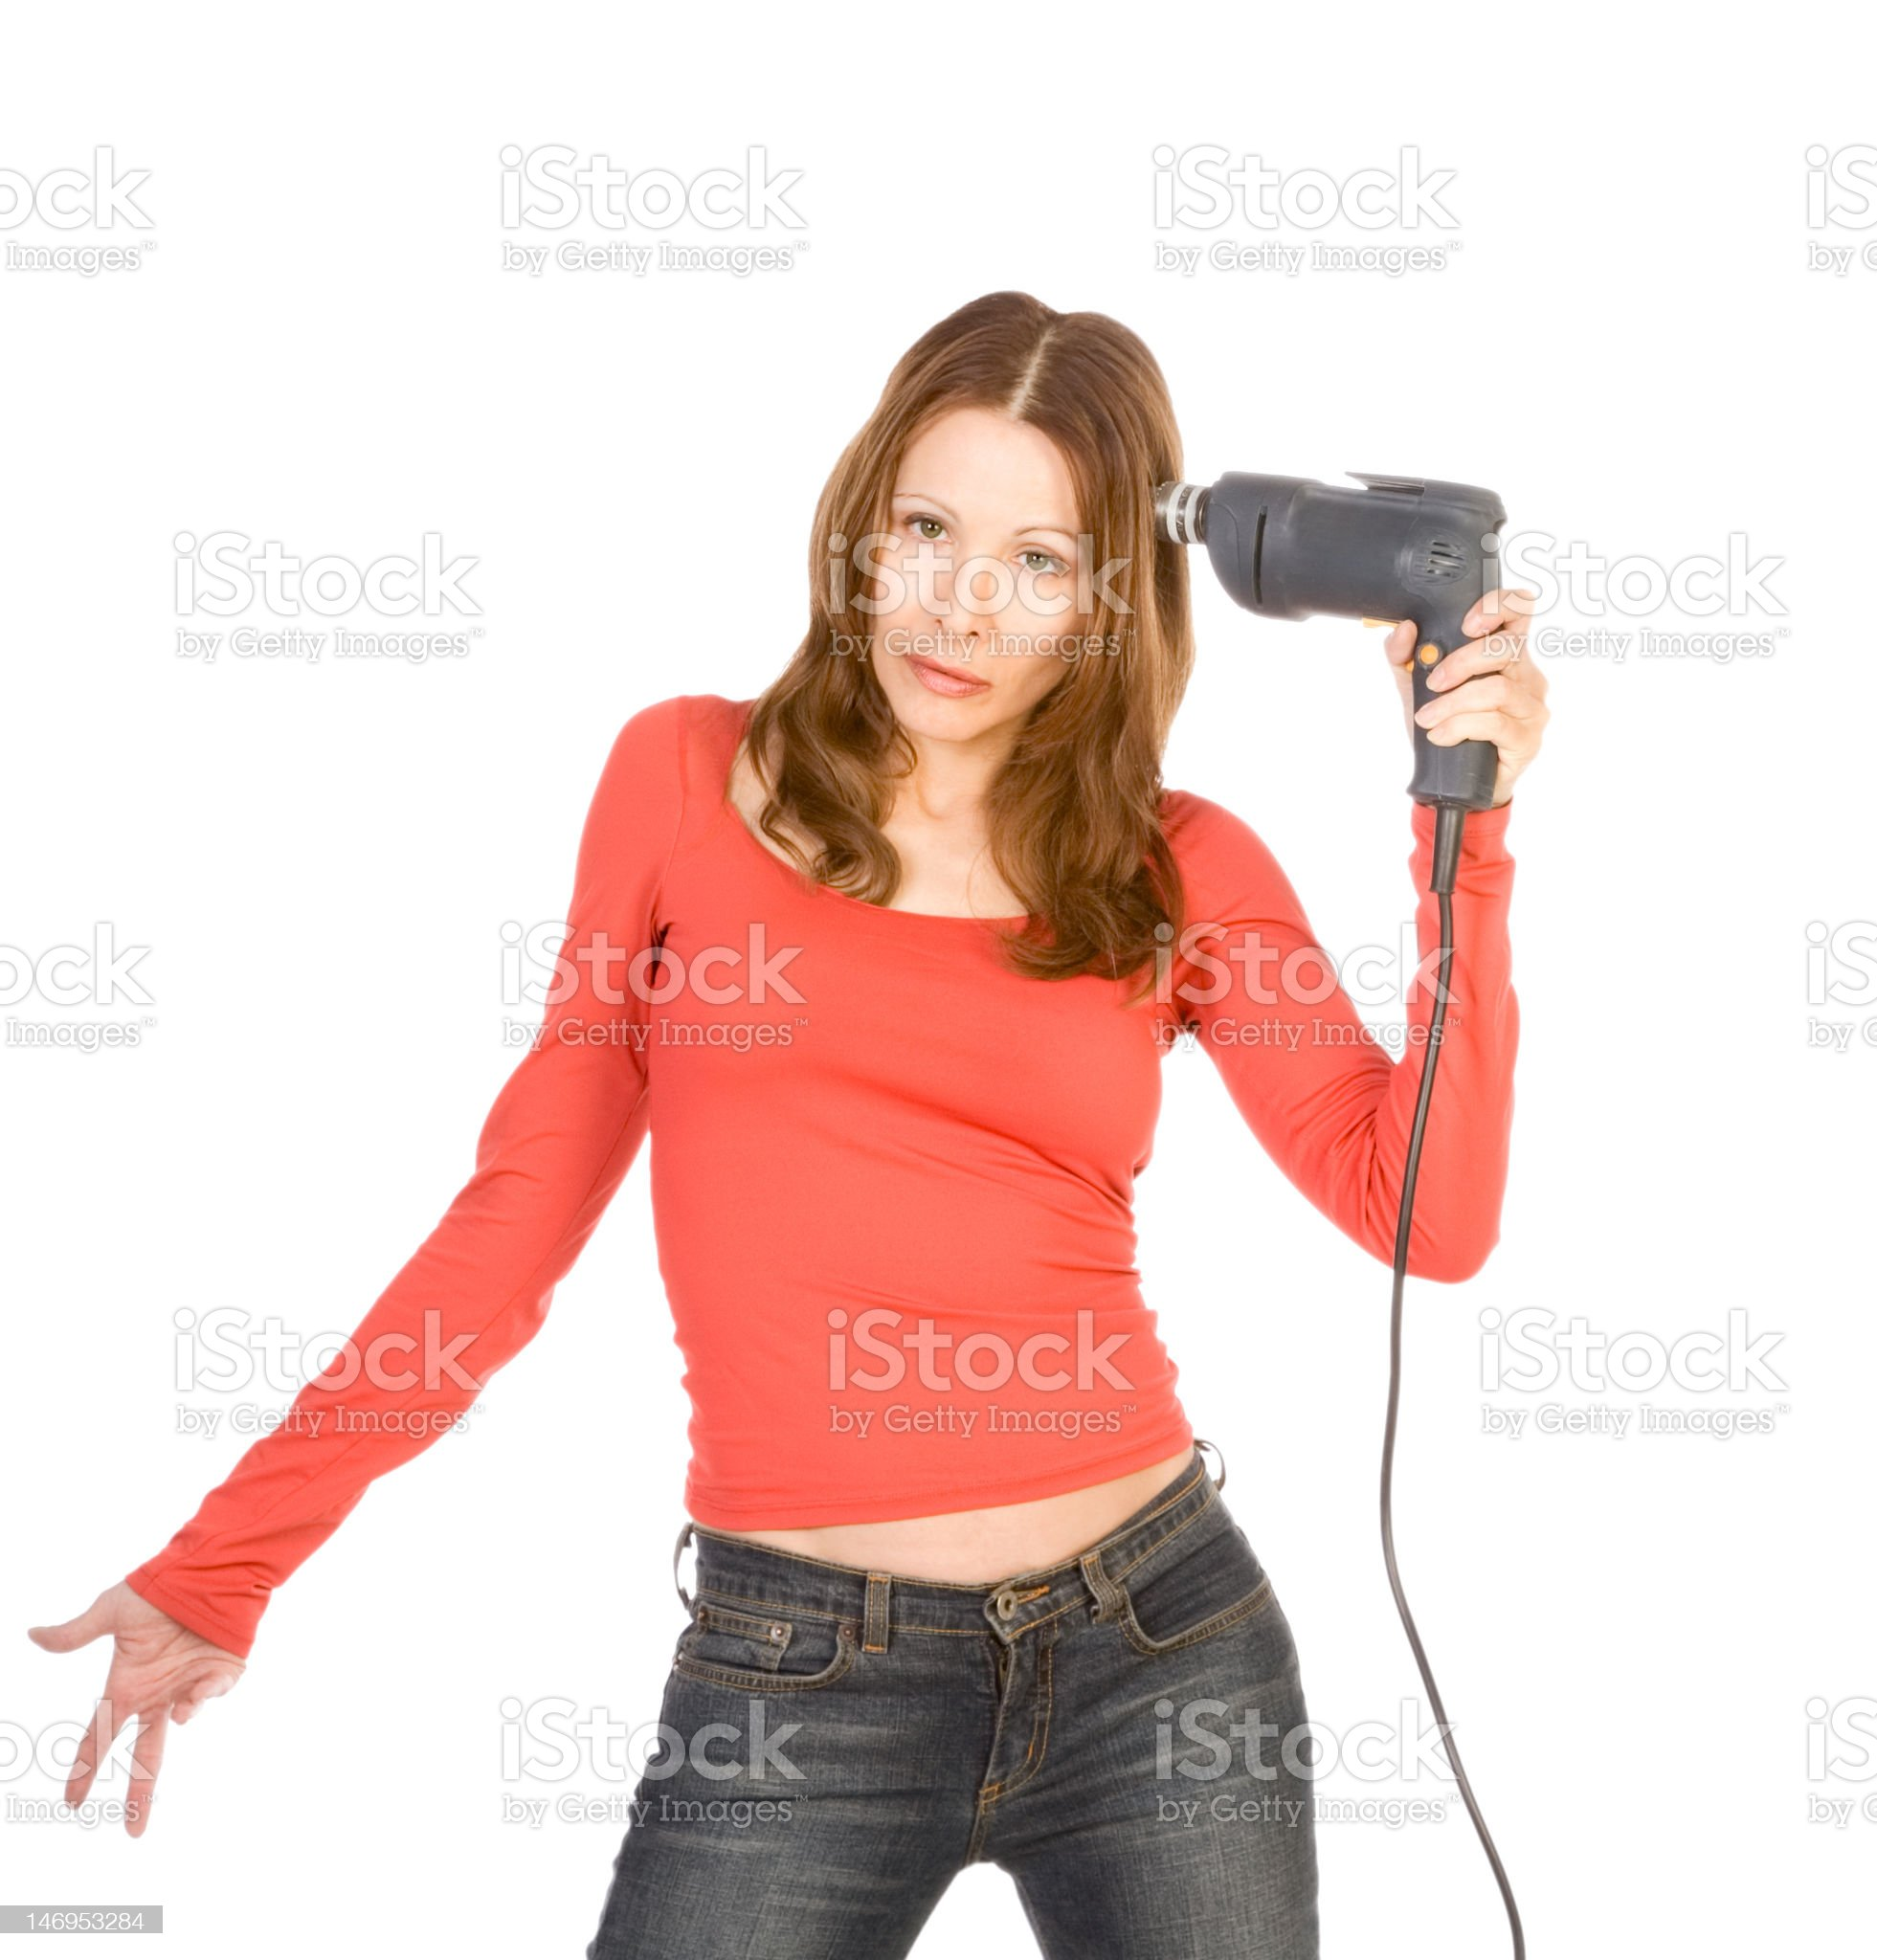 Mature woman in frustration with drill by her temple royalty-free stock photo